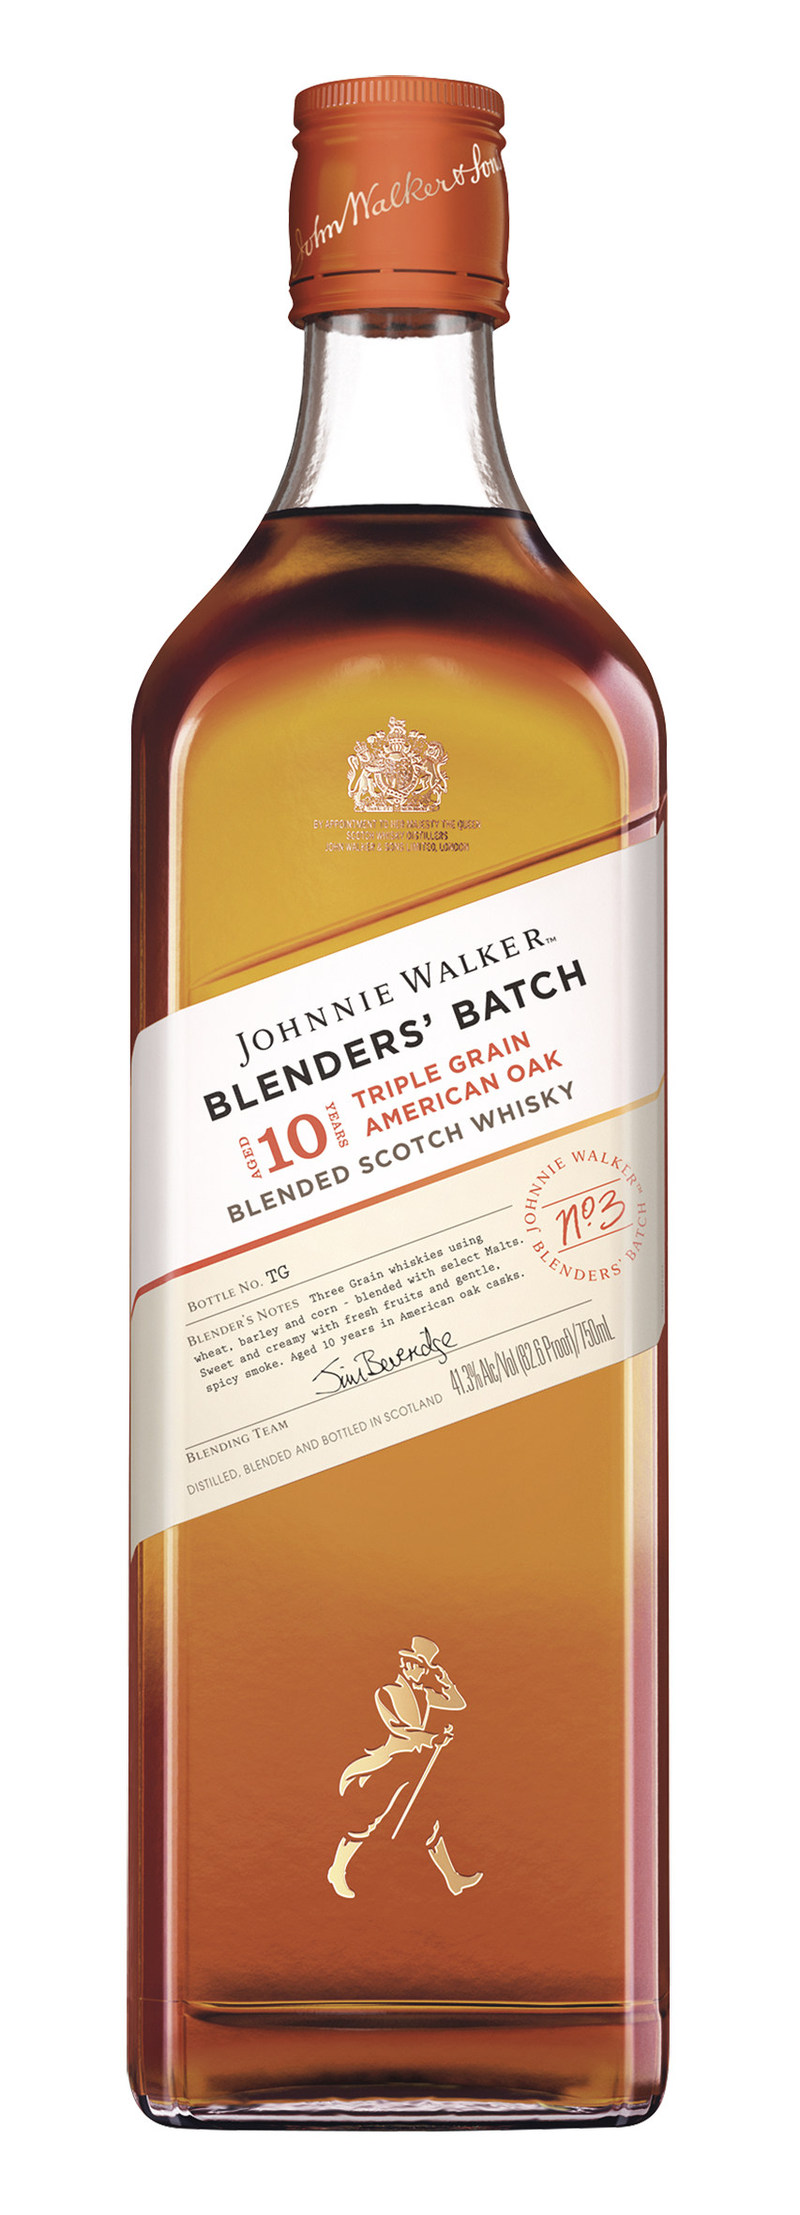 Johnnie Walker, the world's #1 selling blended Scotch whisky, launches new Blenders' Batch platform in the U.S with Triple Grain American Oak.